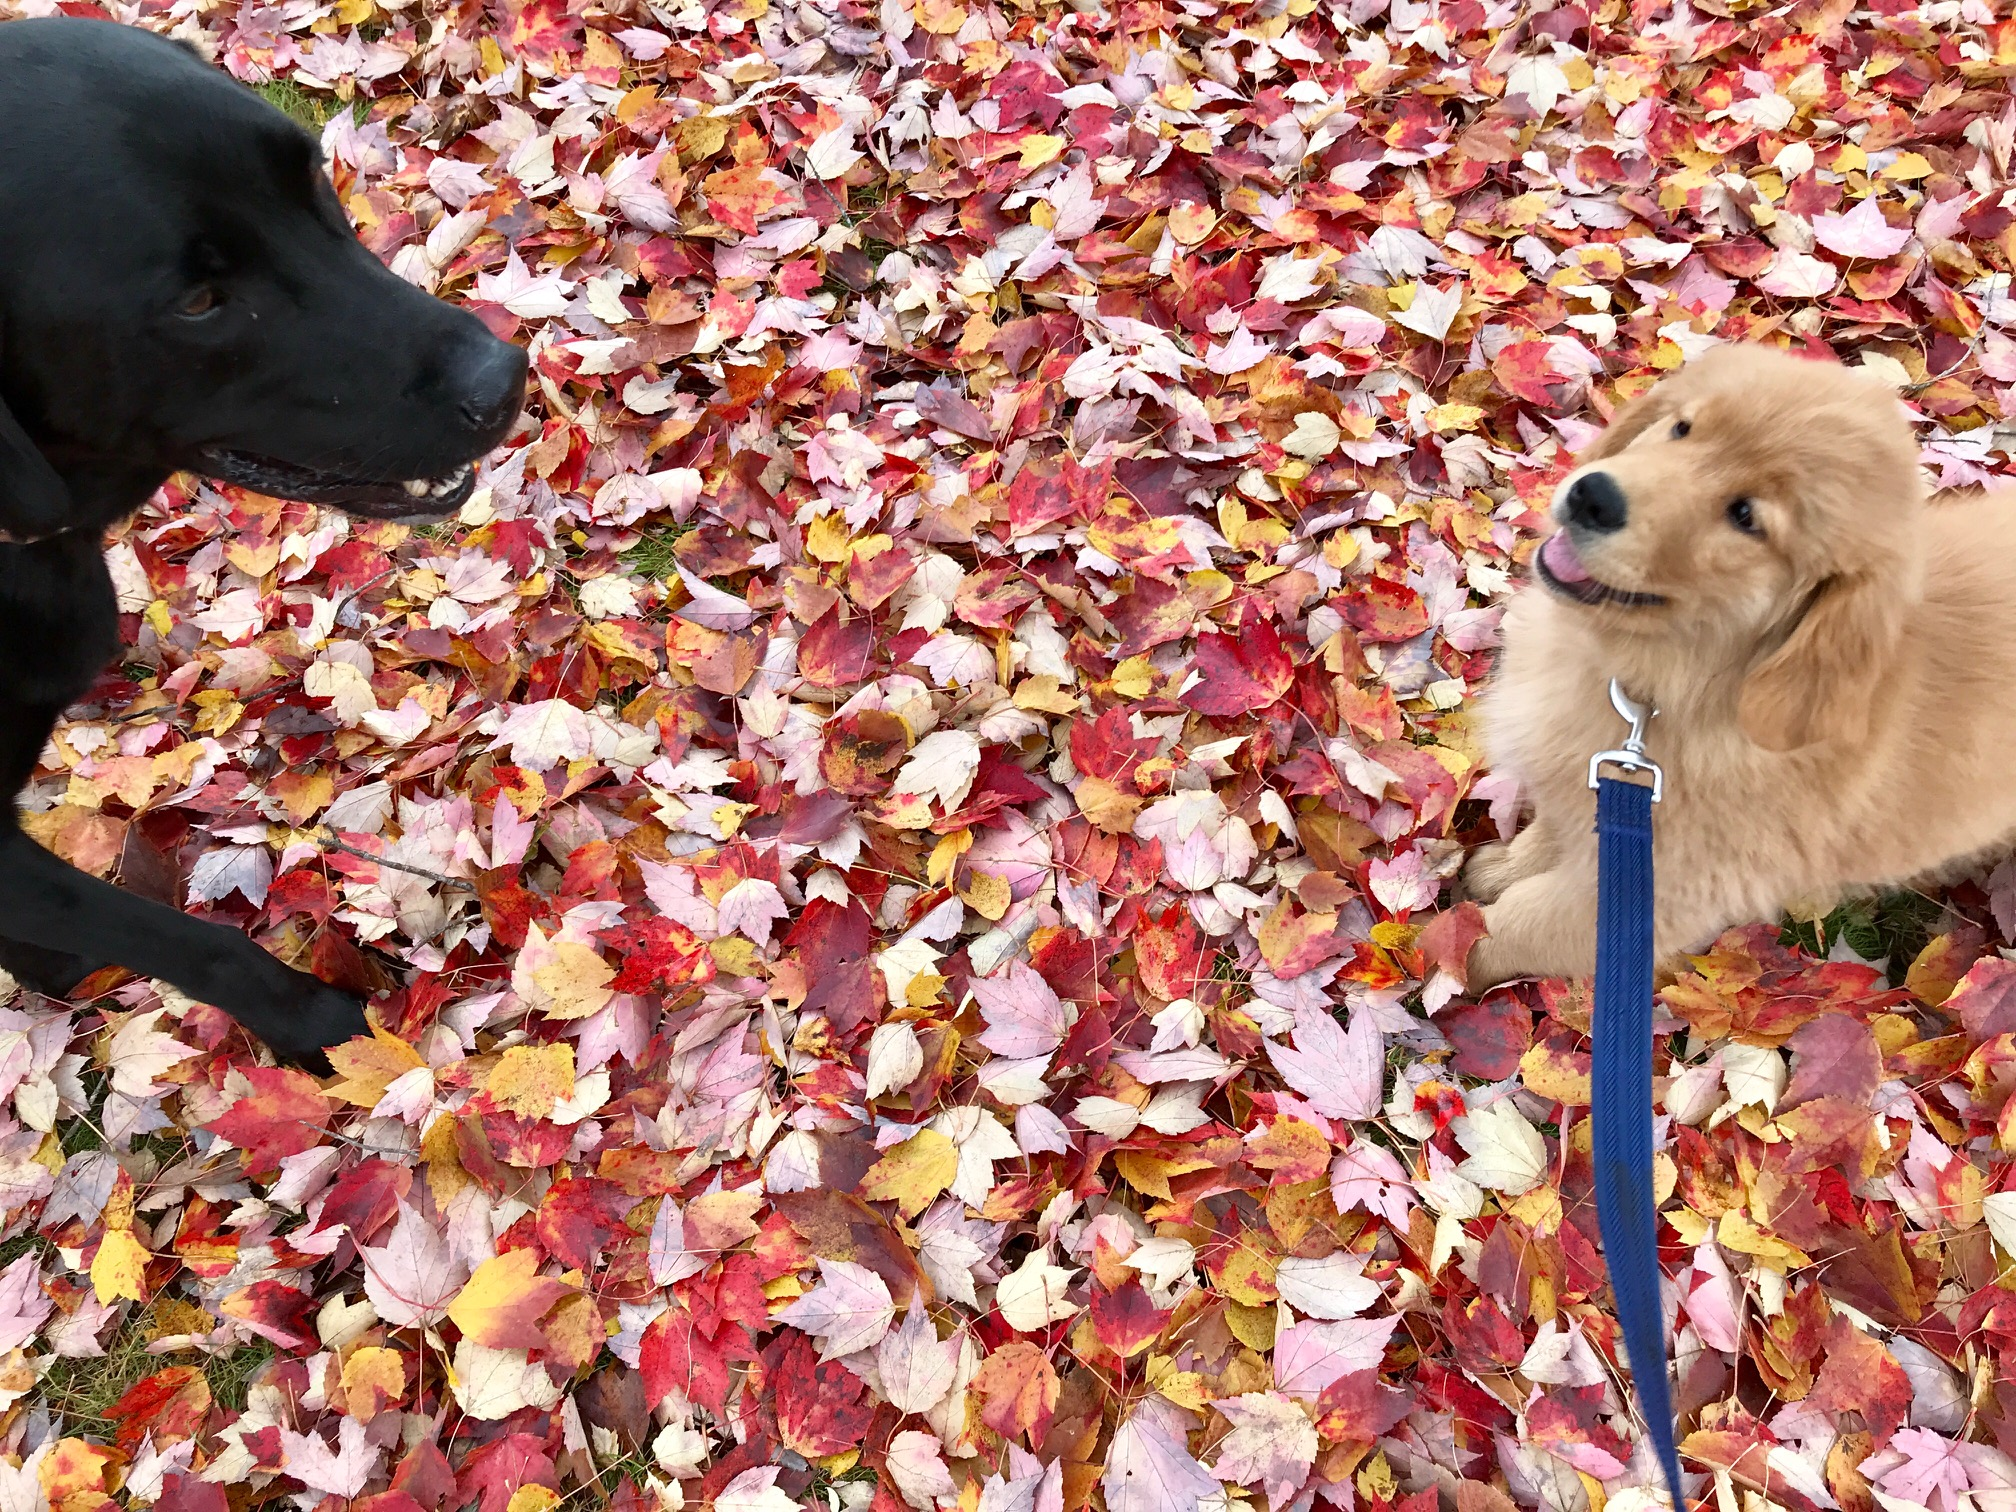 It's International Dog Day and Reviews.com recently named Concord a top city to visit with your dog. Here are some ideas for you and your best friend to have fun in New Hampshire's capital city whether you're driving through or staying in the area: